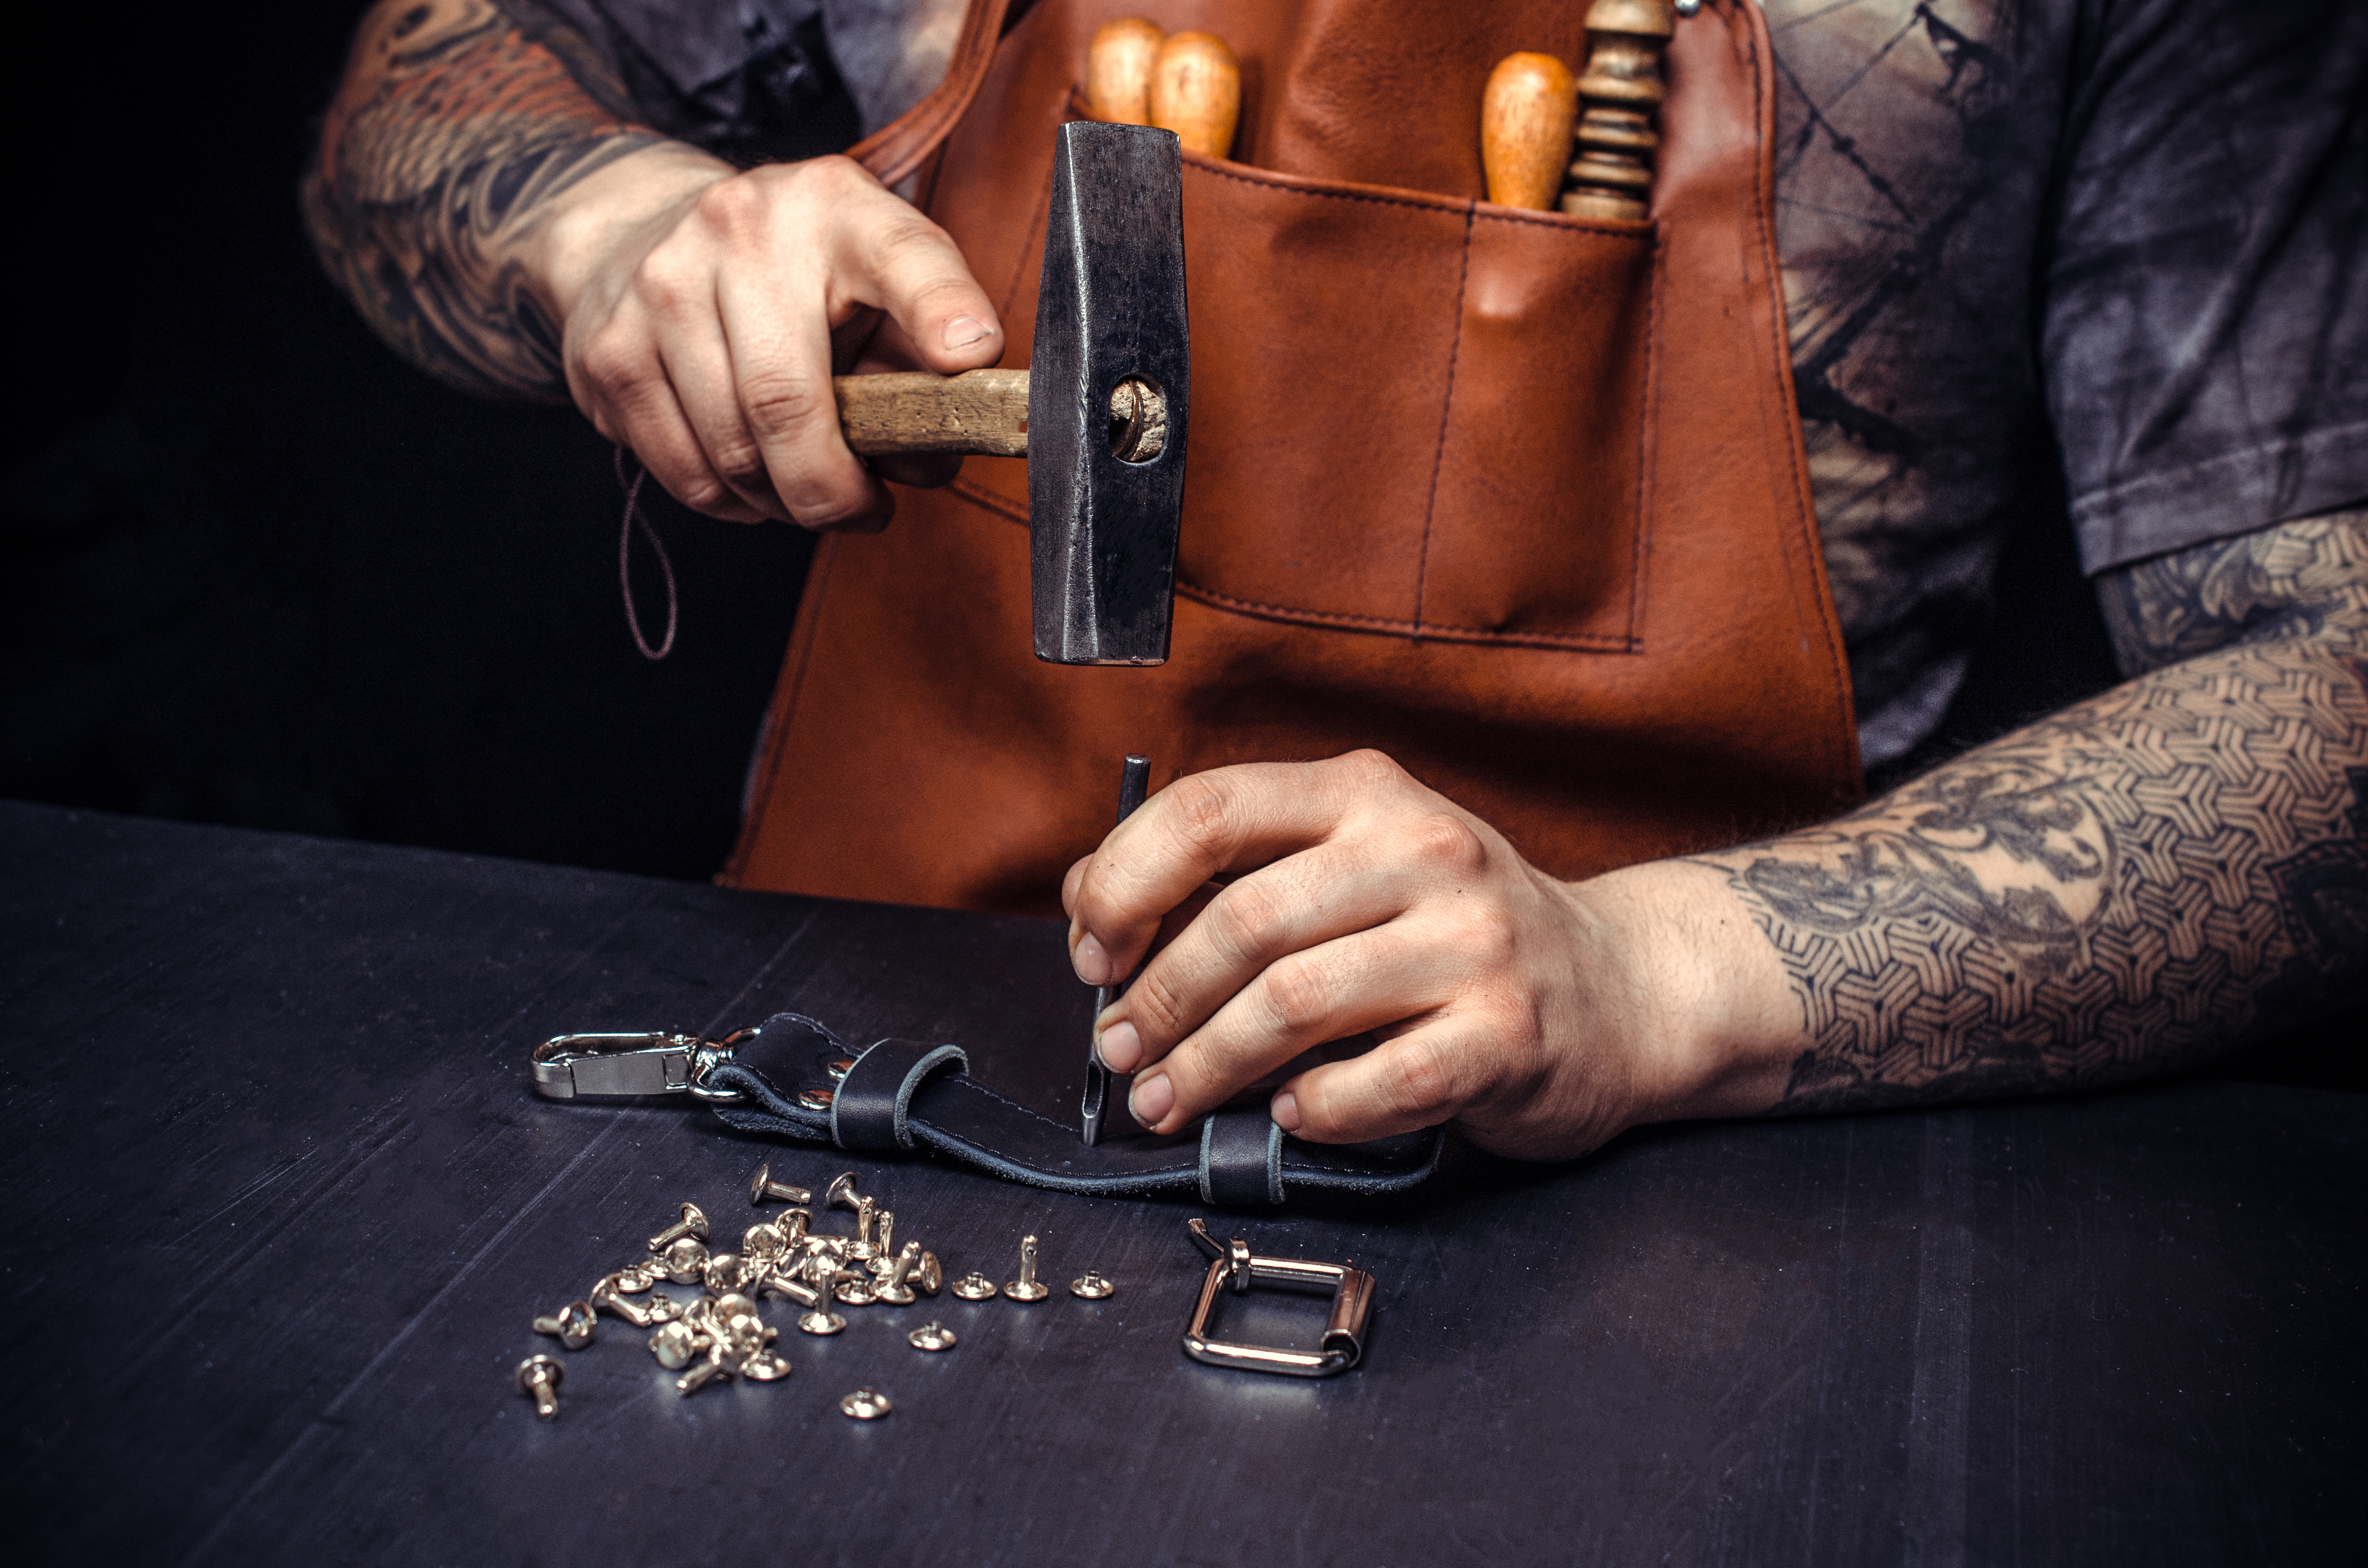 Artisan of leather produces leather good